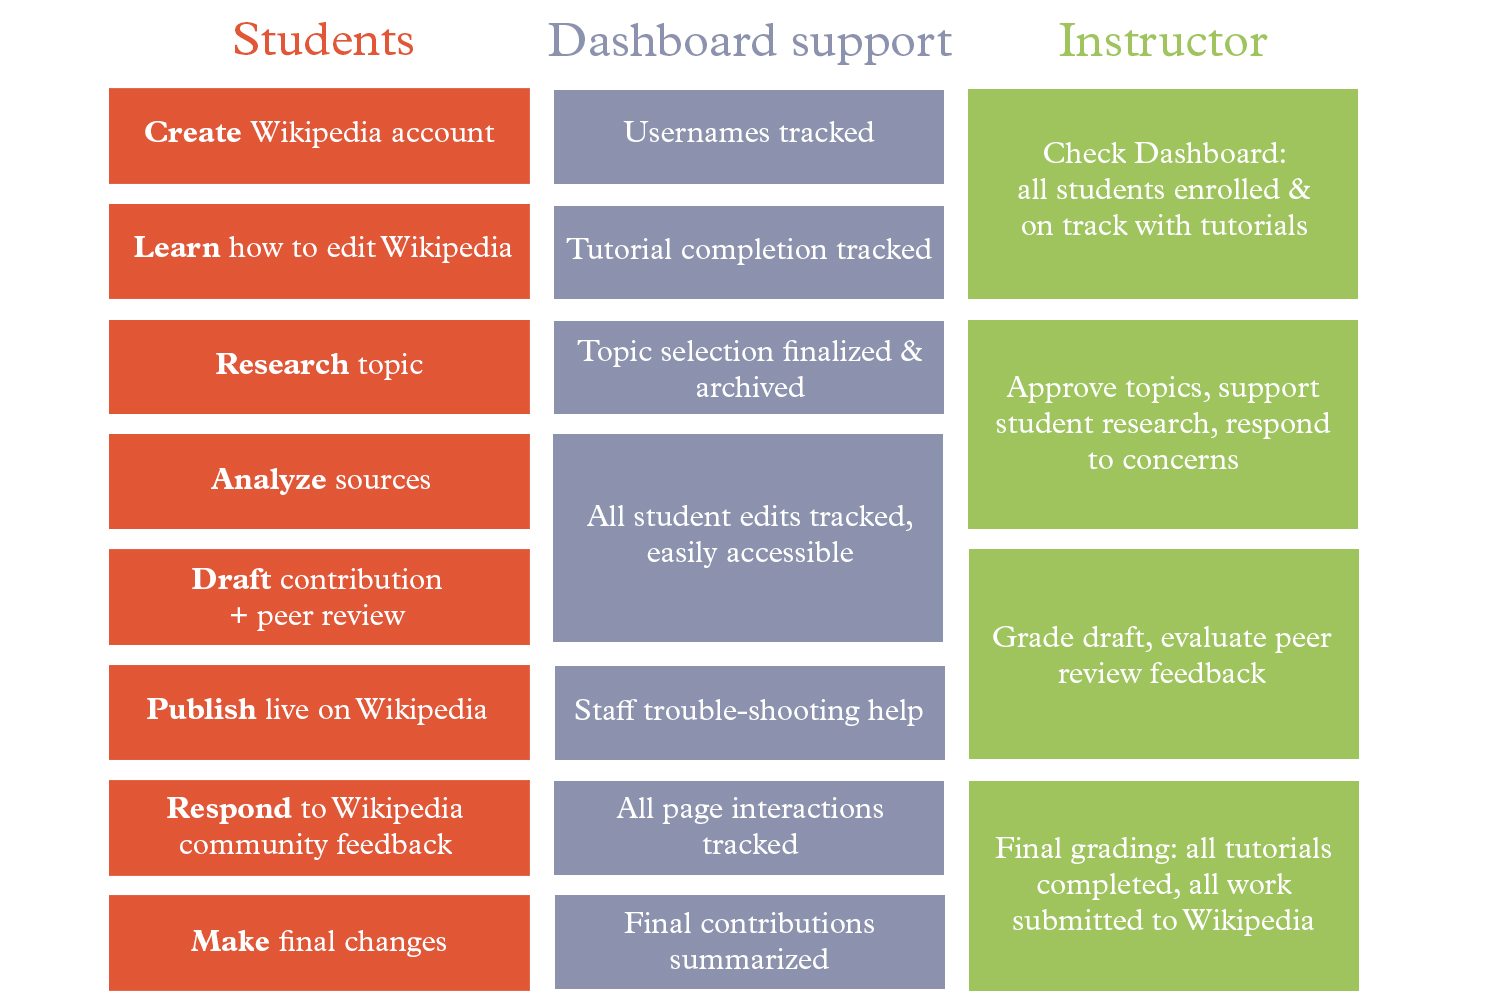 Sample timeline: differences for students and instructors and how the Dashboard supports each step.